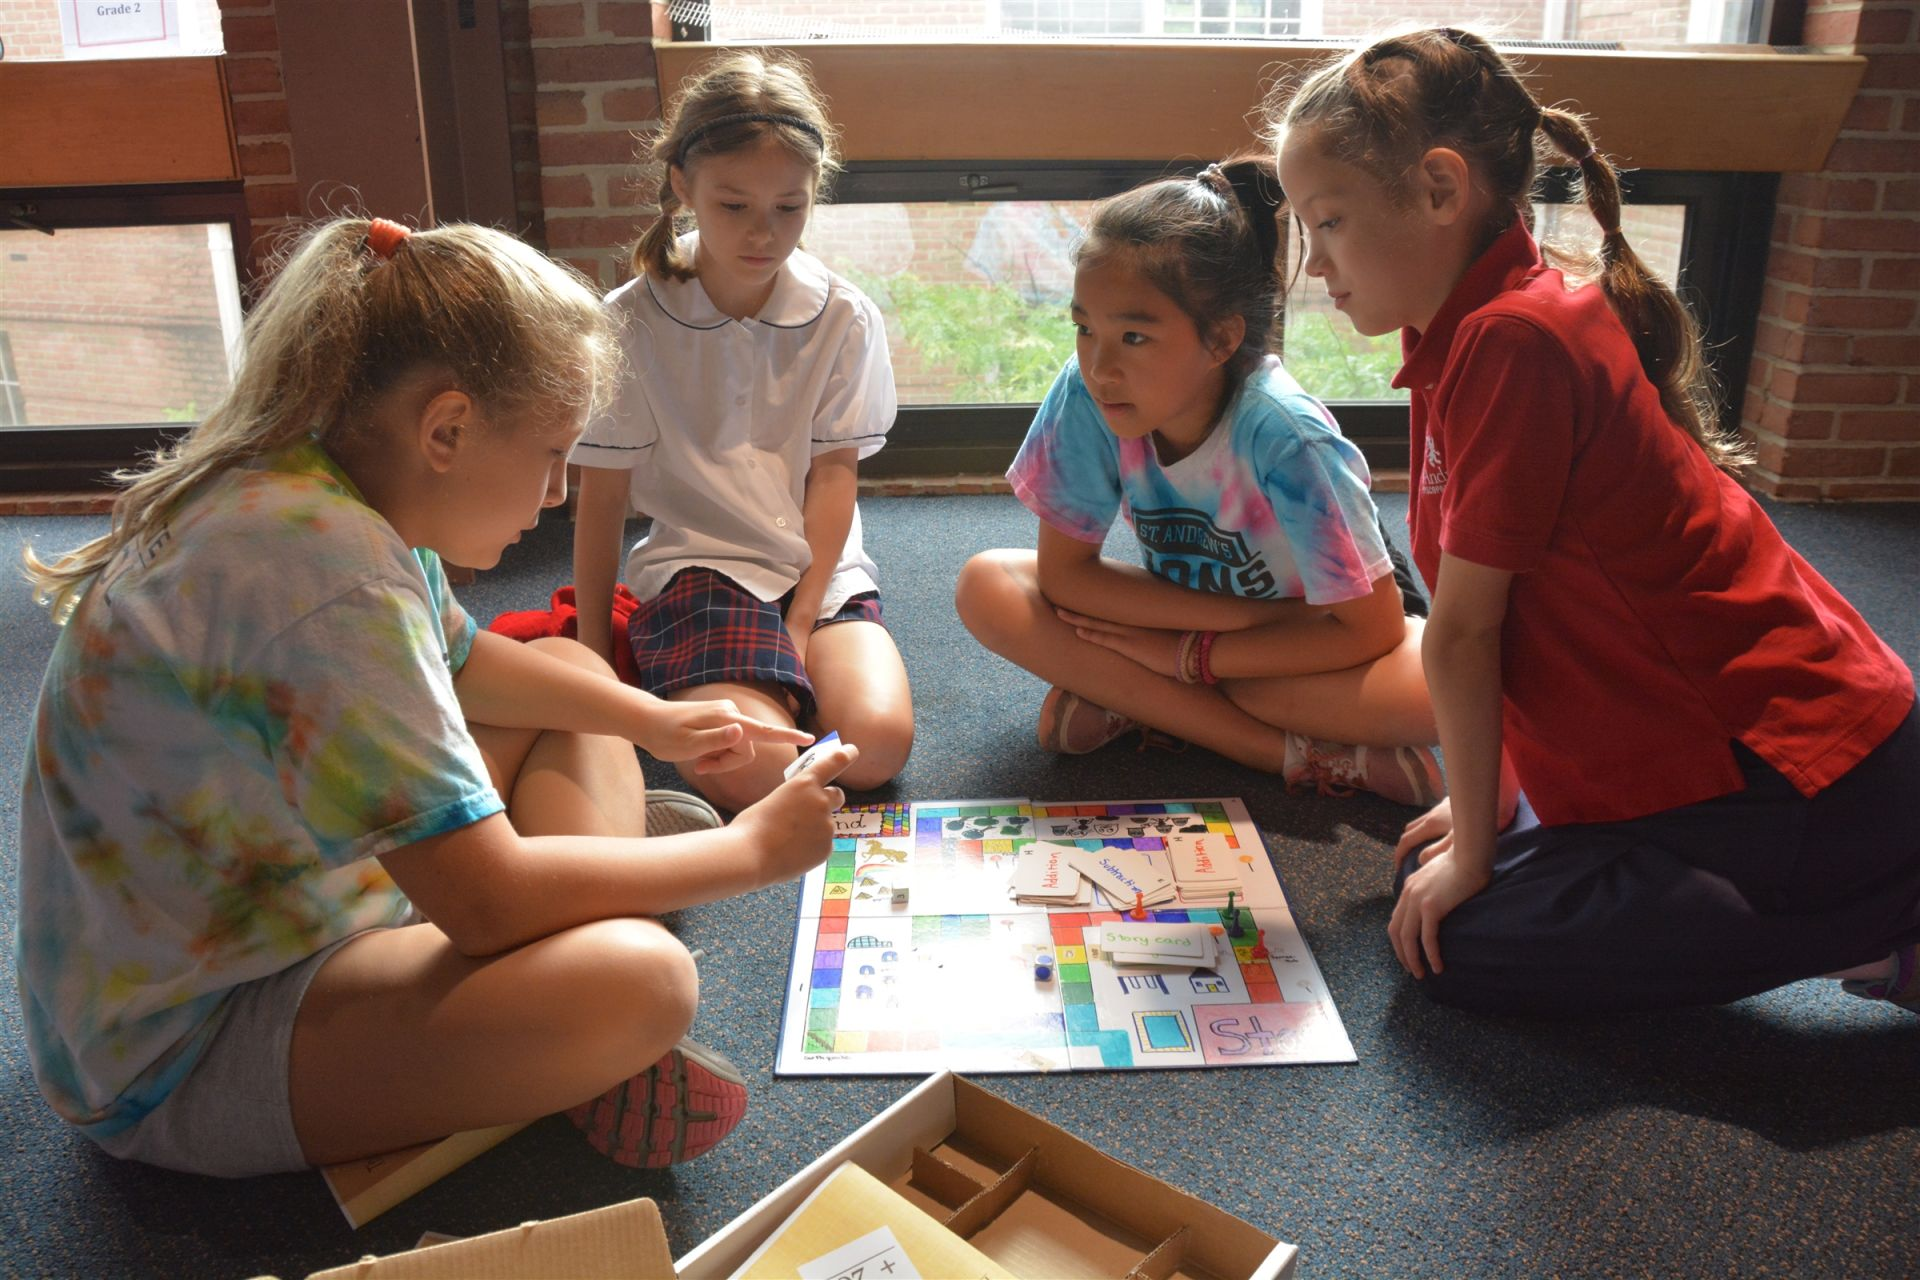 Students working together in a design-thinking project - St. Andrew's Episcopal School